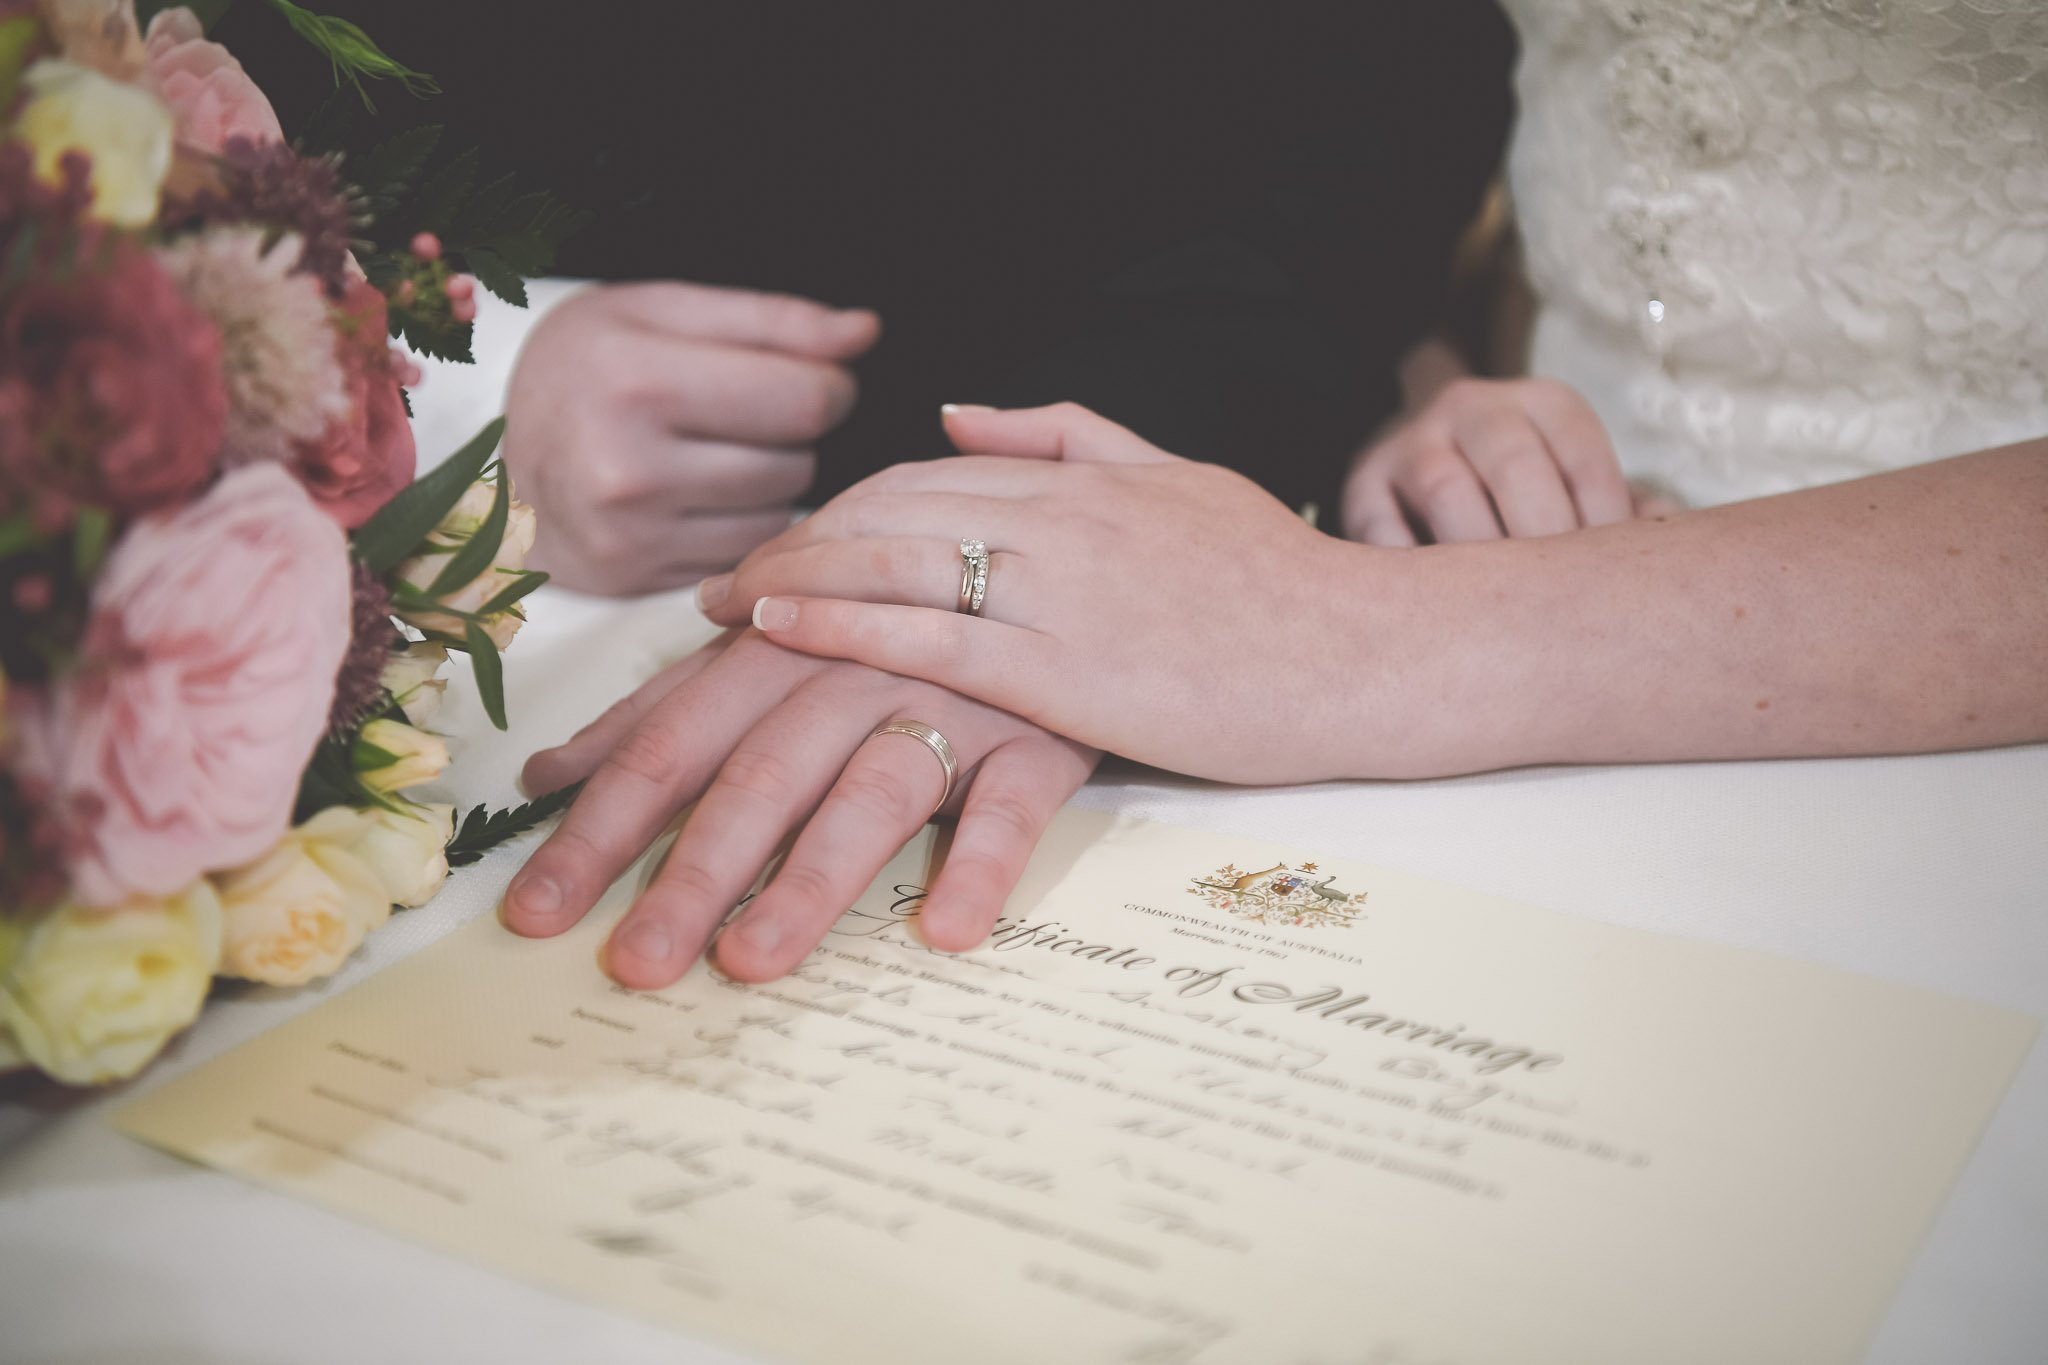 Beautiful wedding photography of a bride and groom's hands resting on their wedding certificate